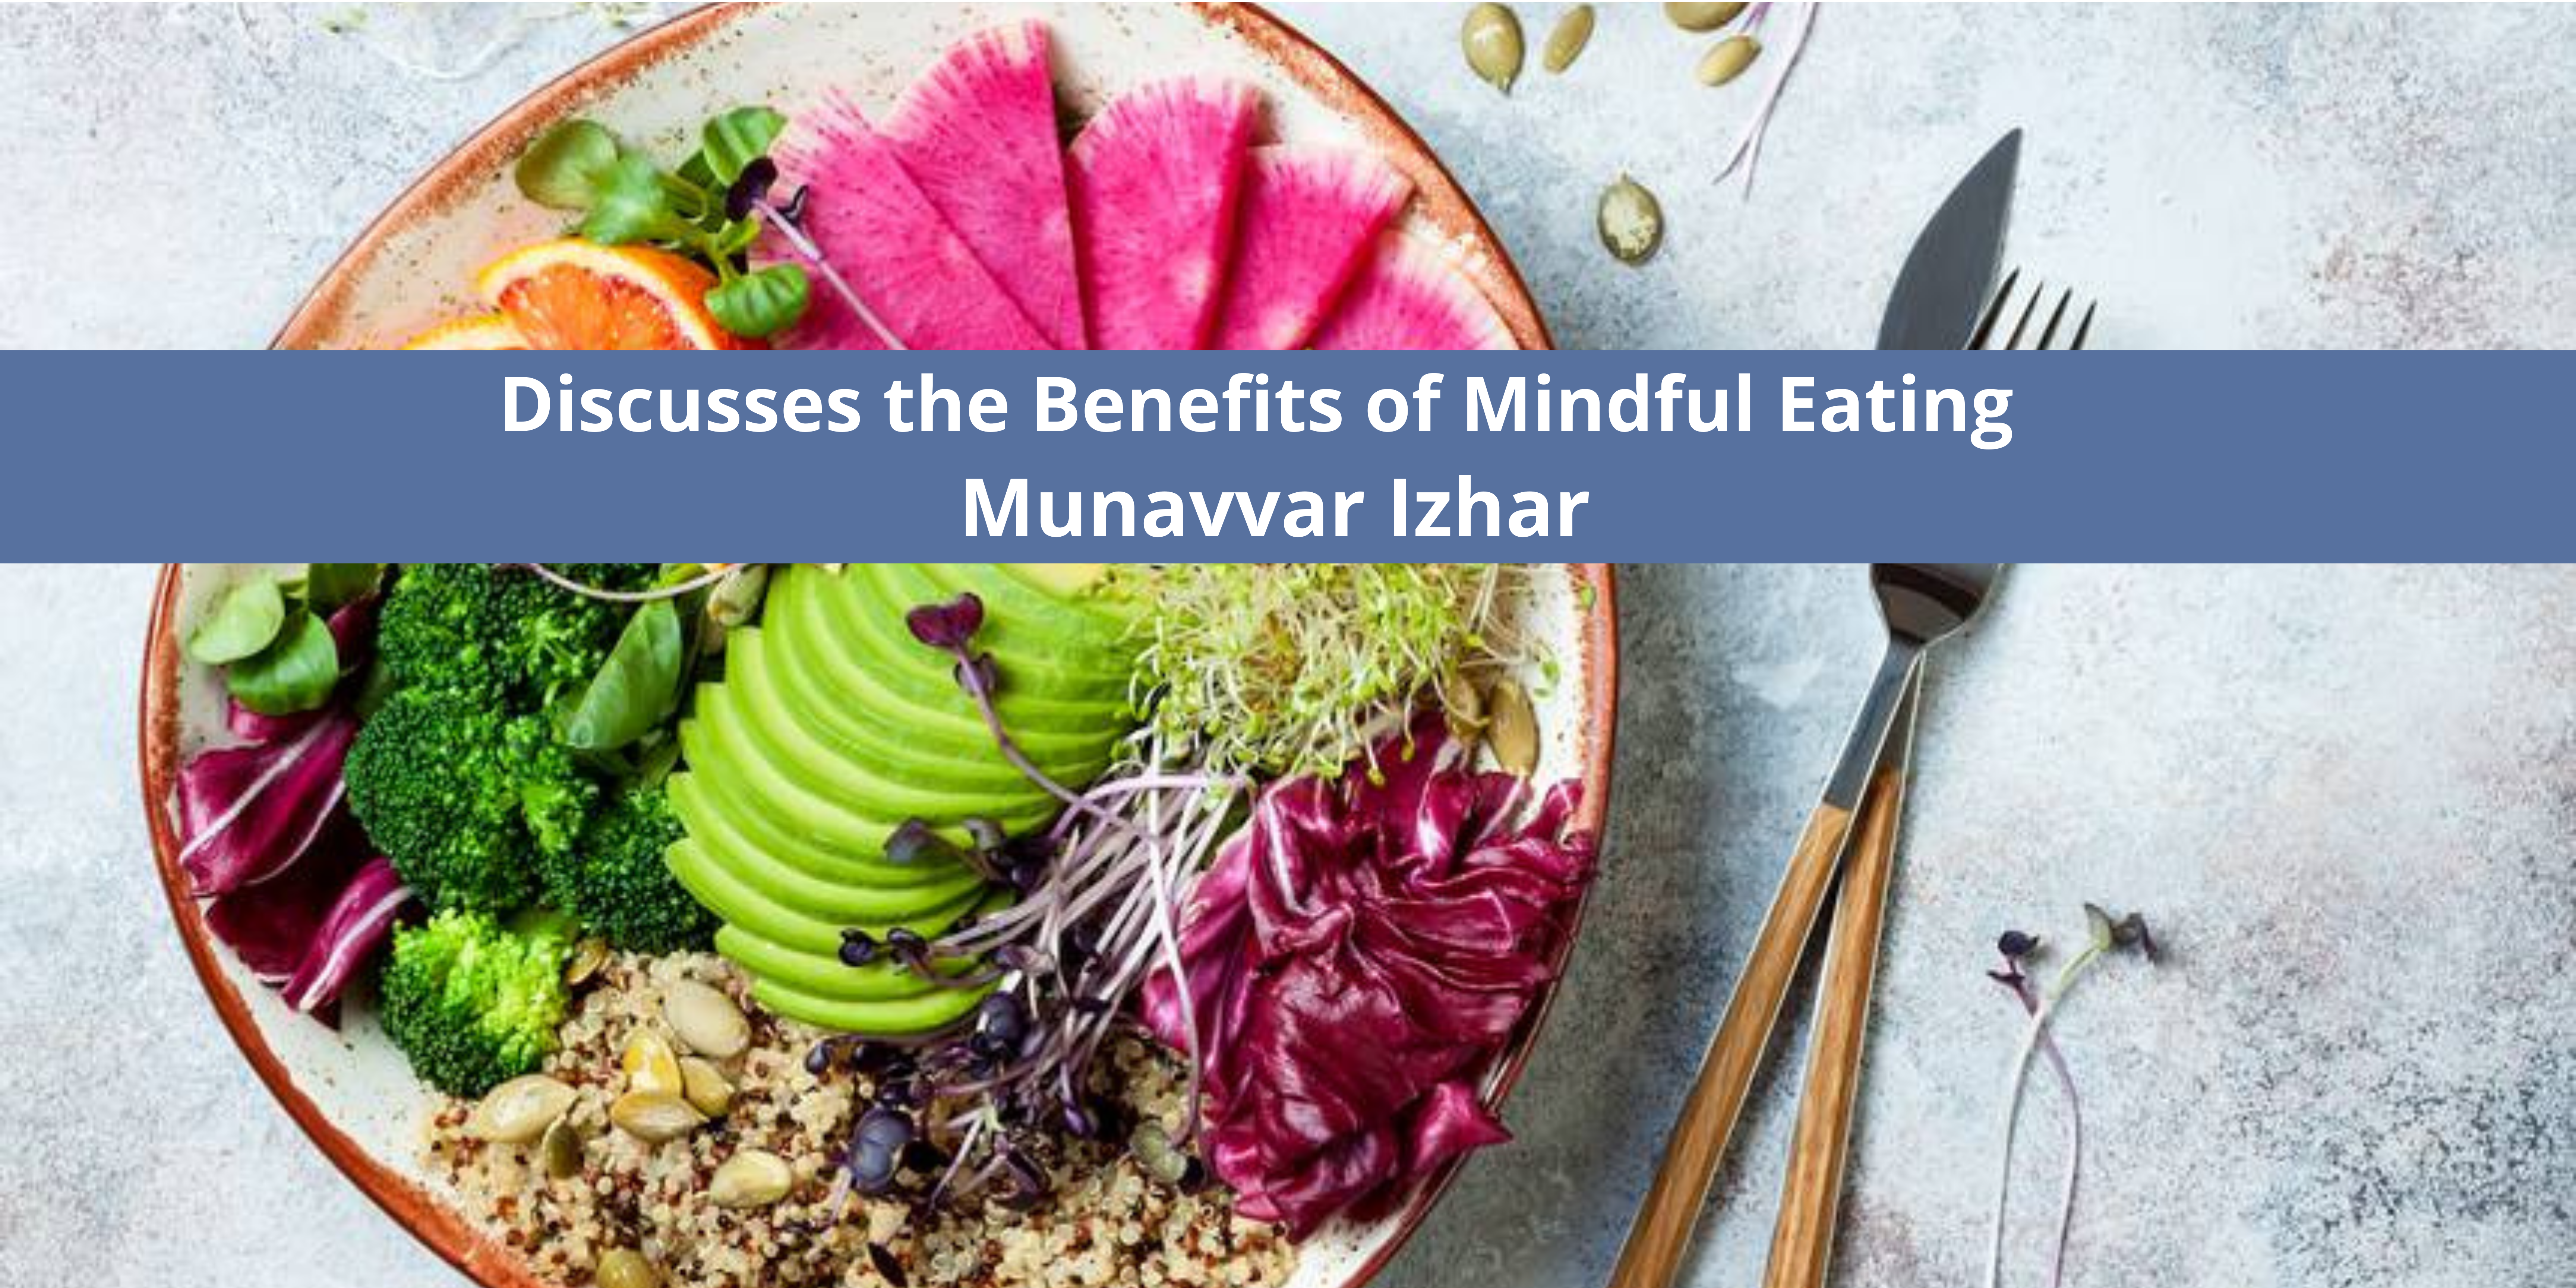 Munavvar Izhar MD Discusses the Benefits of Mindful Eating